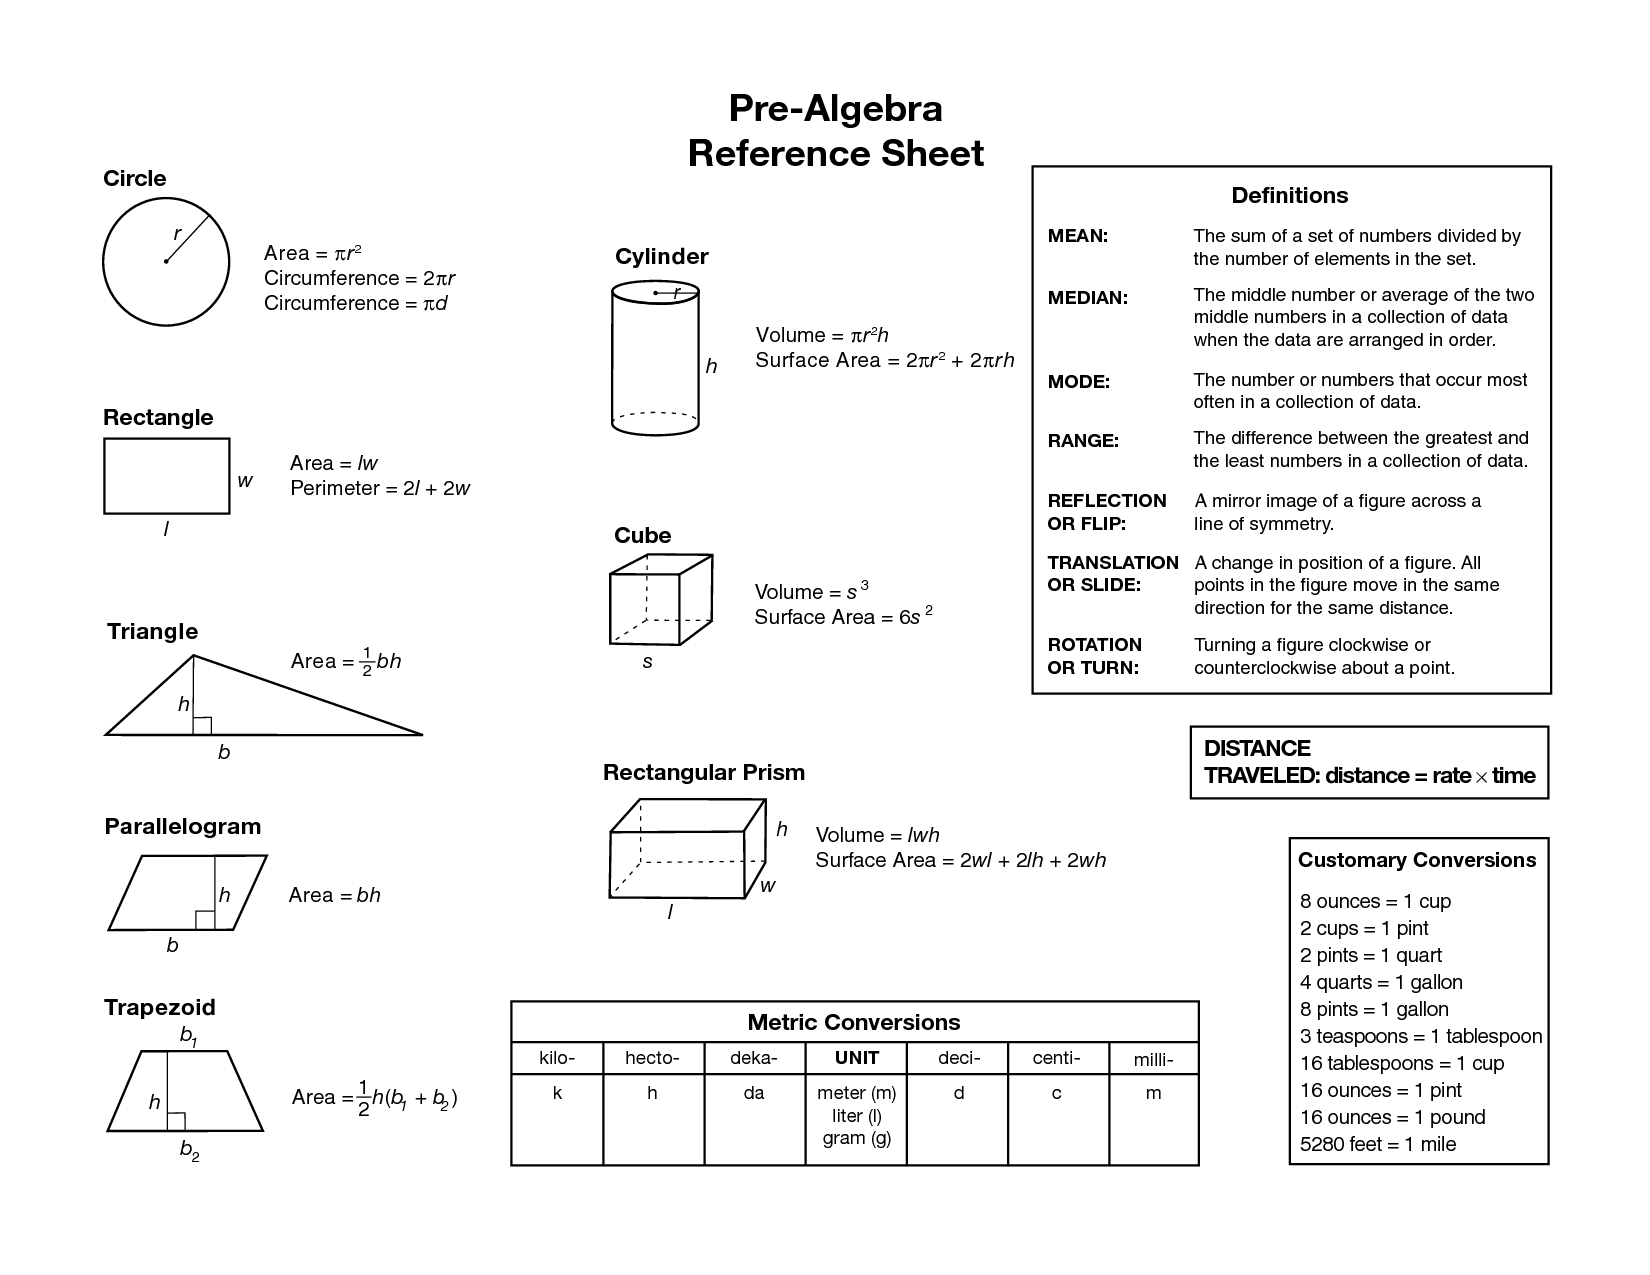 best ideas about algebra formulas algebra help algebraic equations chart i attended my last algebra class almost 30 yrs ago and that was also the last time i ever worked an algebra problem